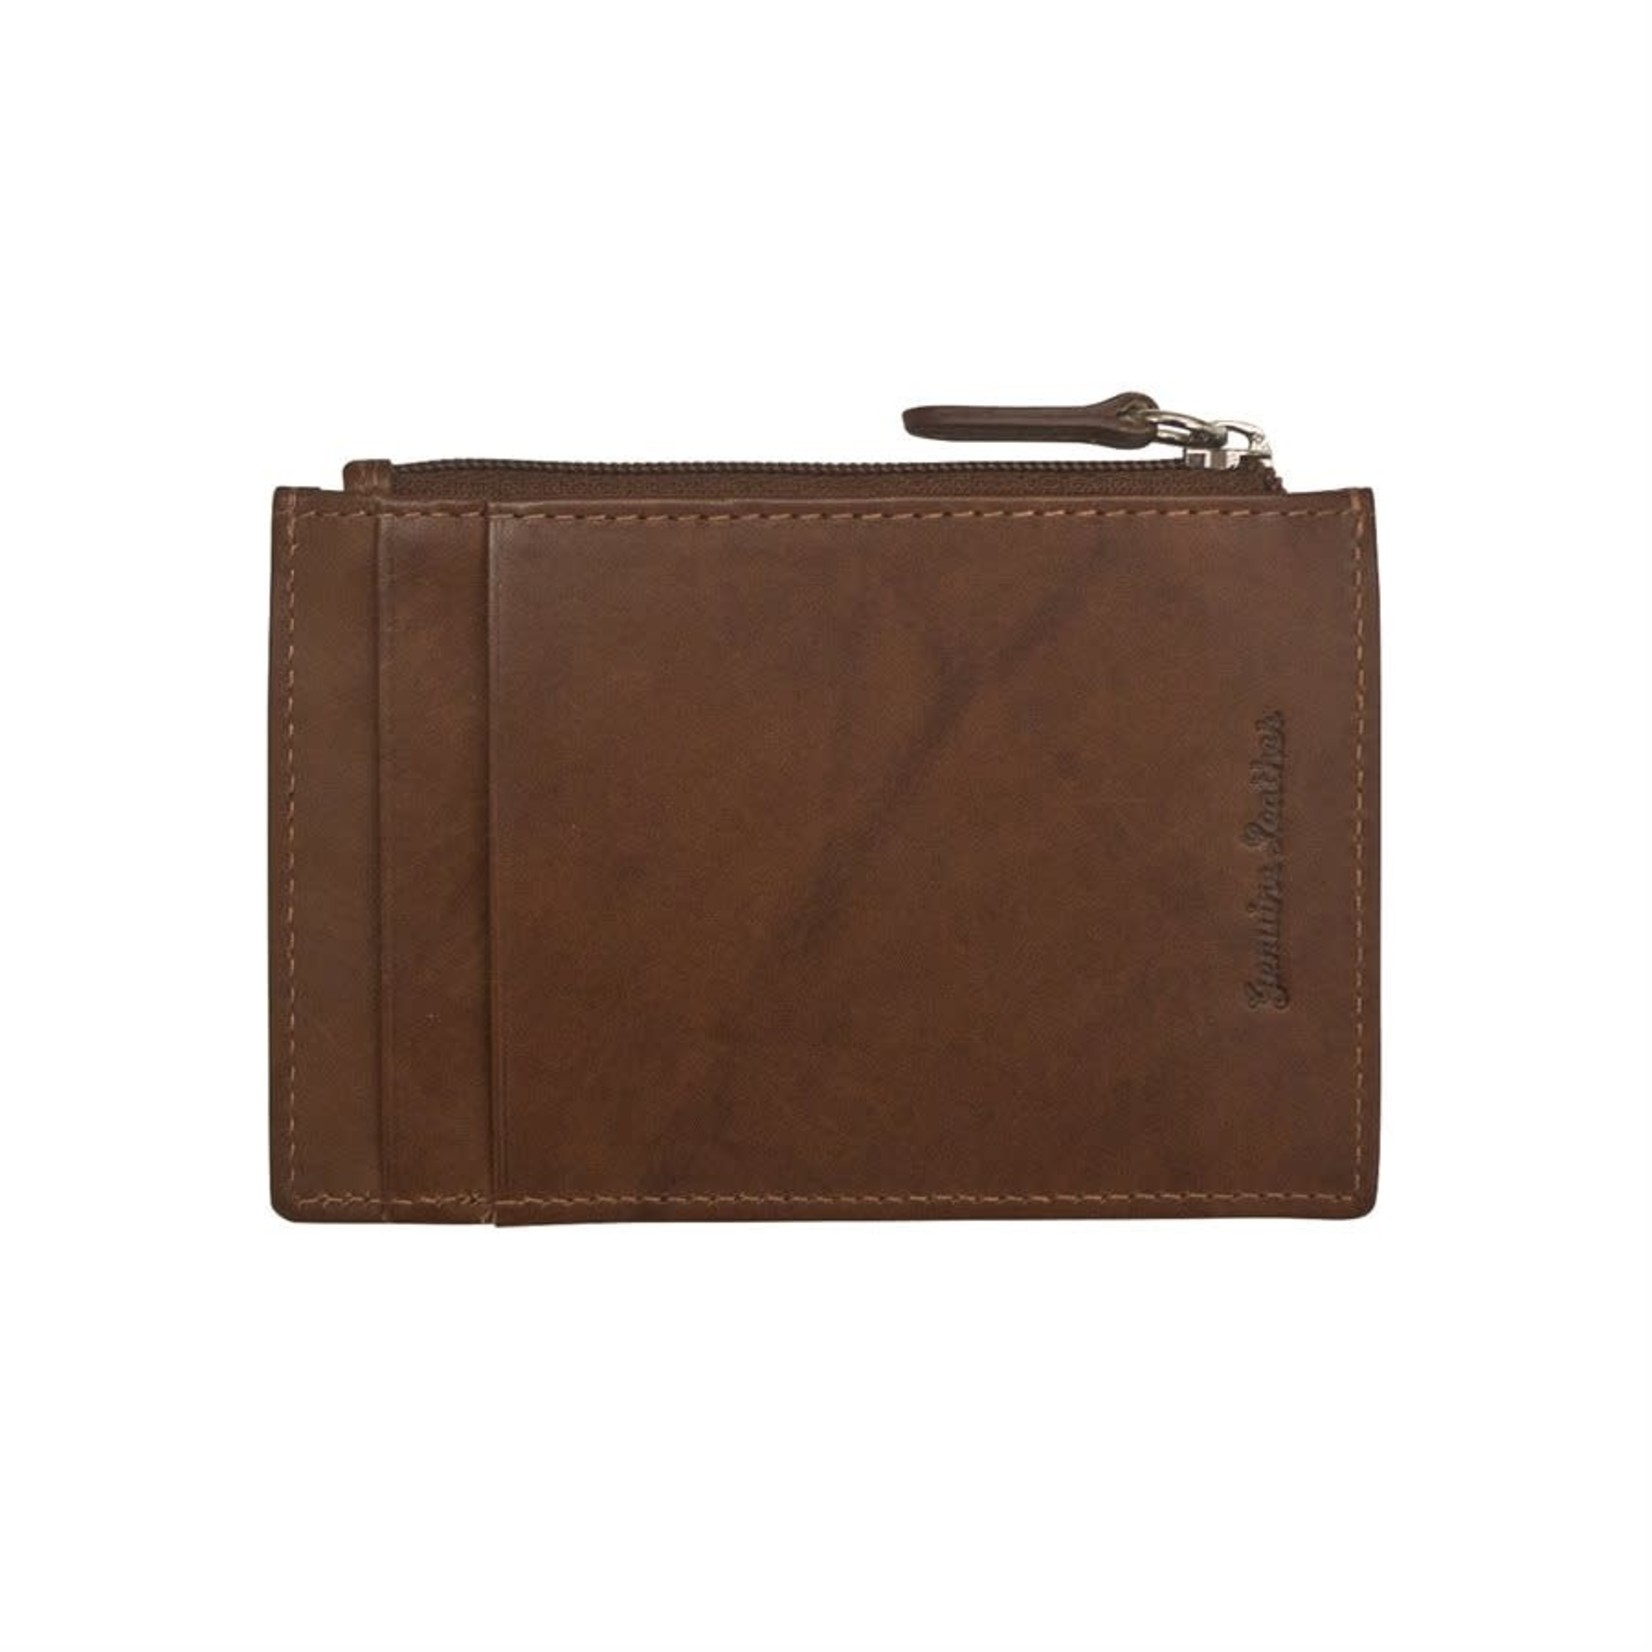 Leather Handbags and Accessories 7416 Toffee - RFID Card Holder